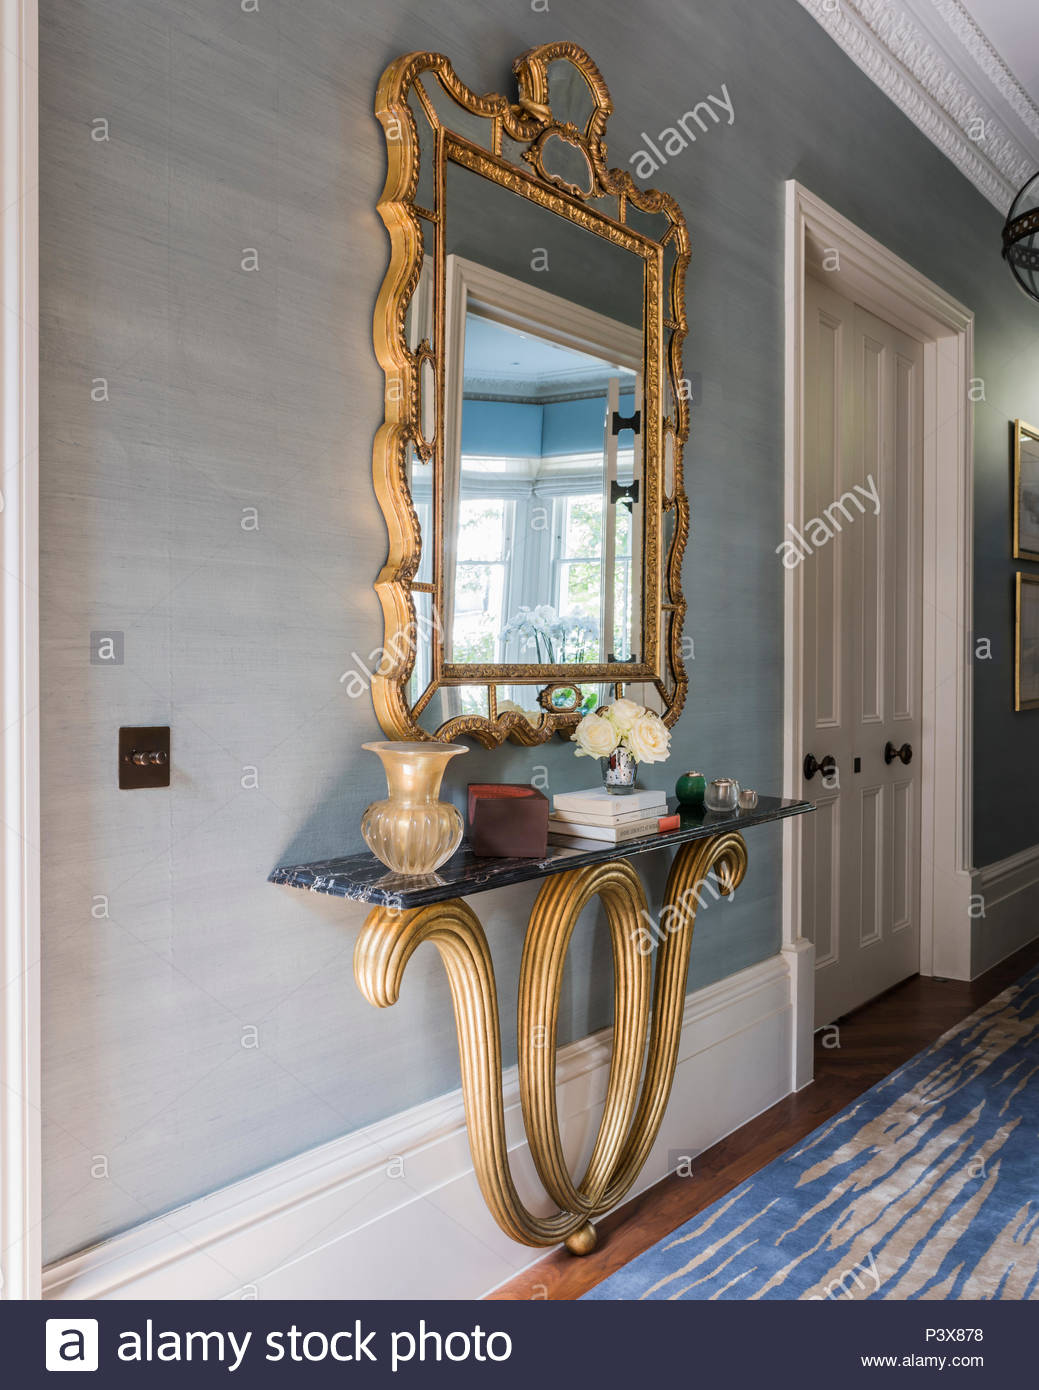 Large Gilt Framed Mirror Above Marble Shelf In Hallway Stock Photo